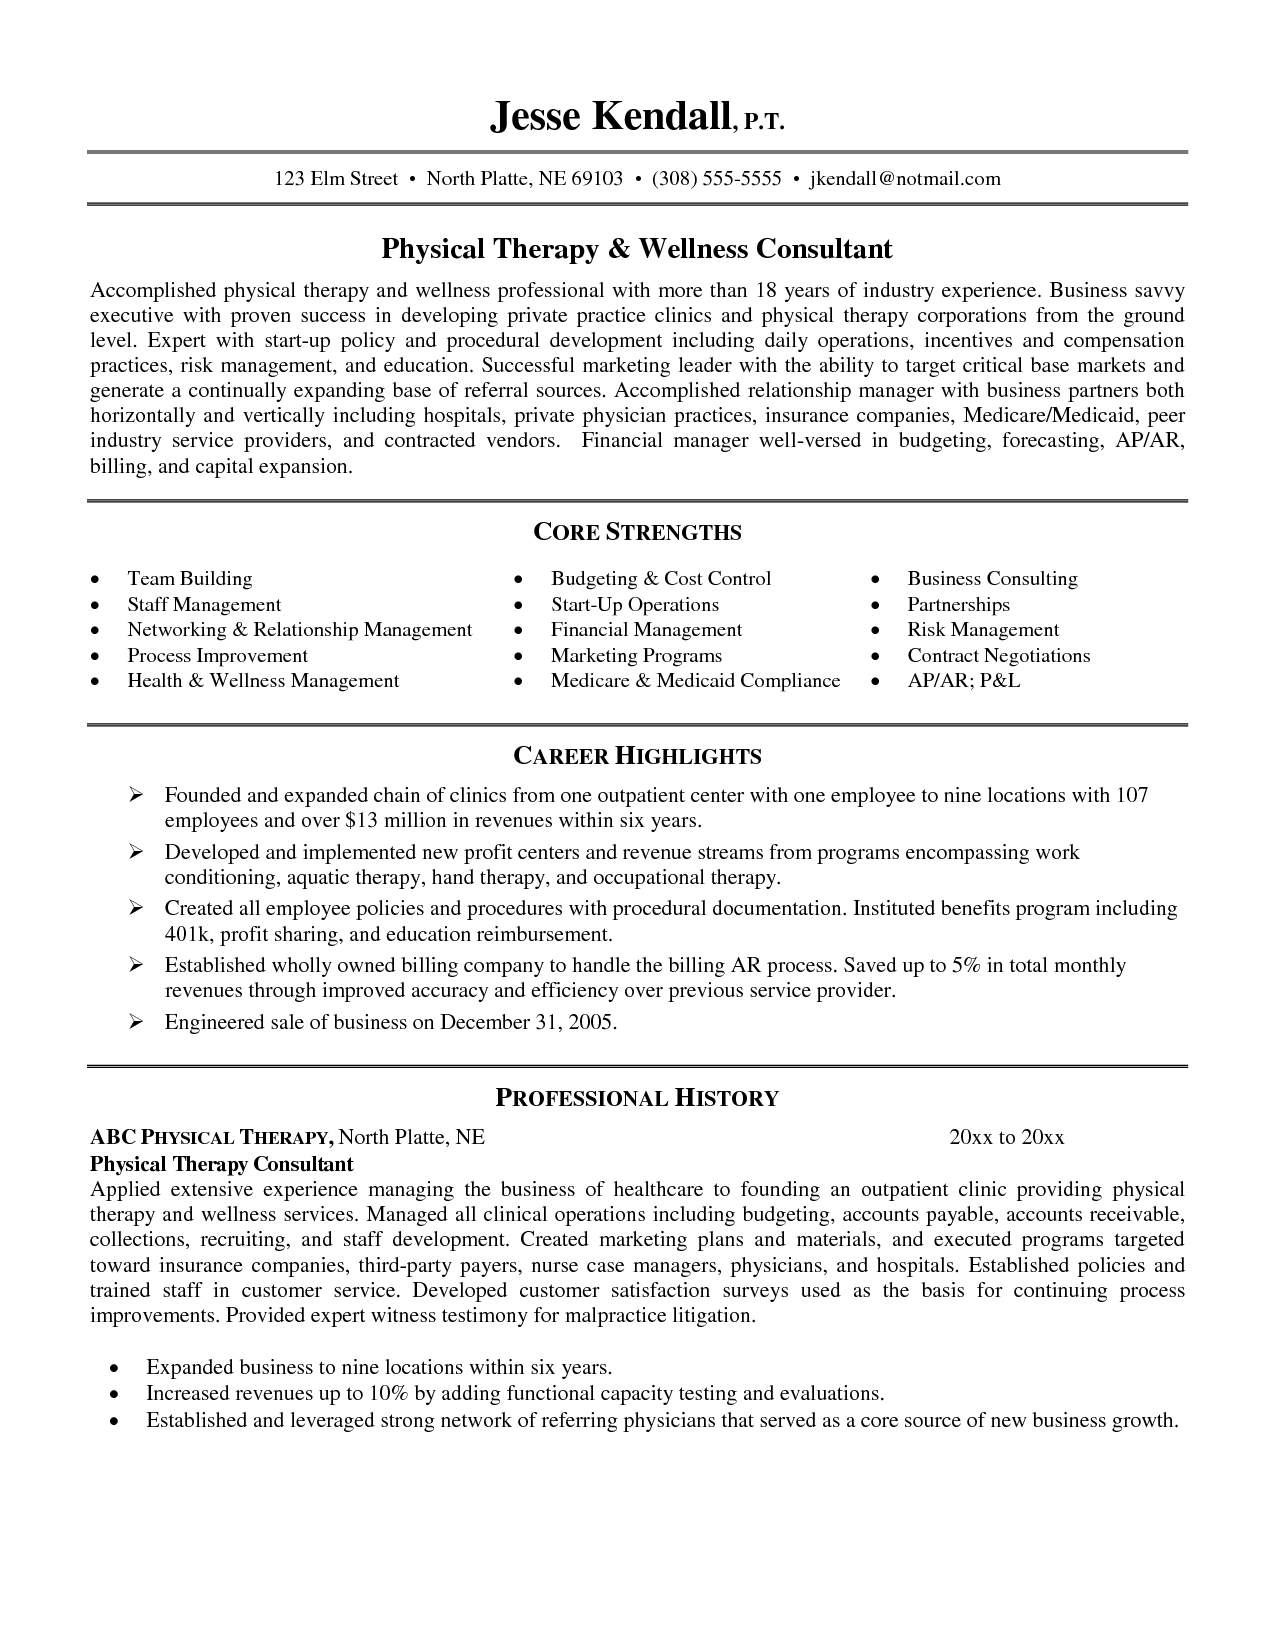 Physical Therapist Assistant Resume Examples Assistant Physical Therapist Resume 8a1af09be